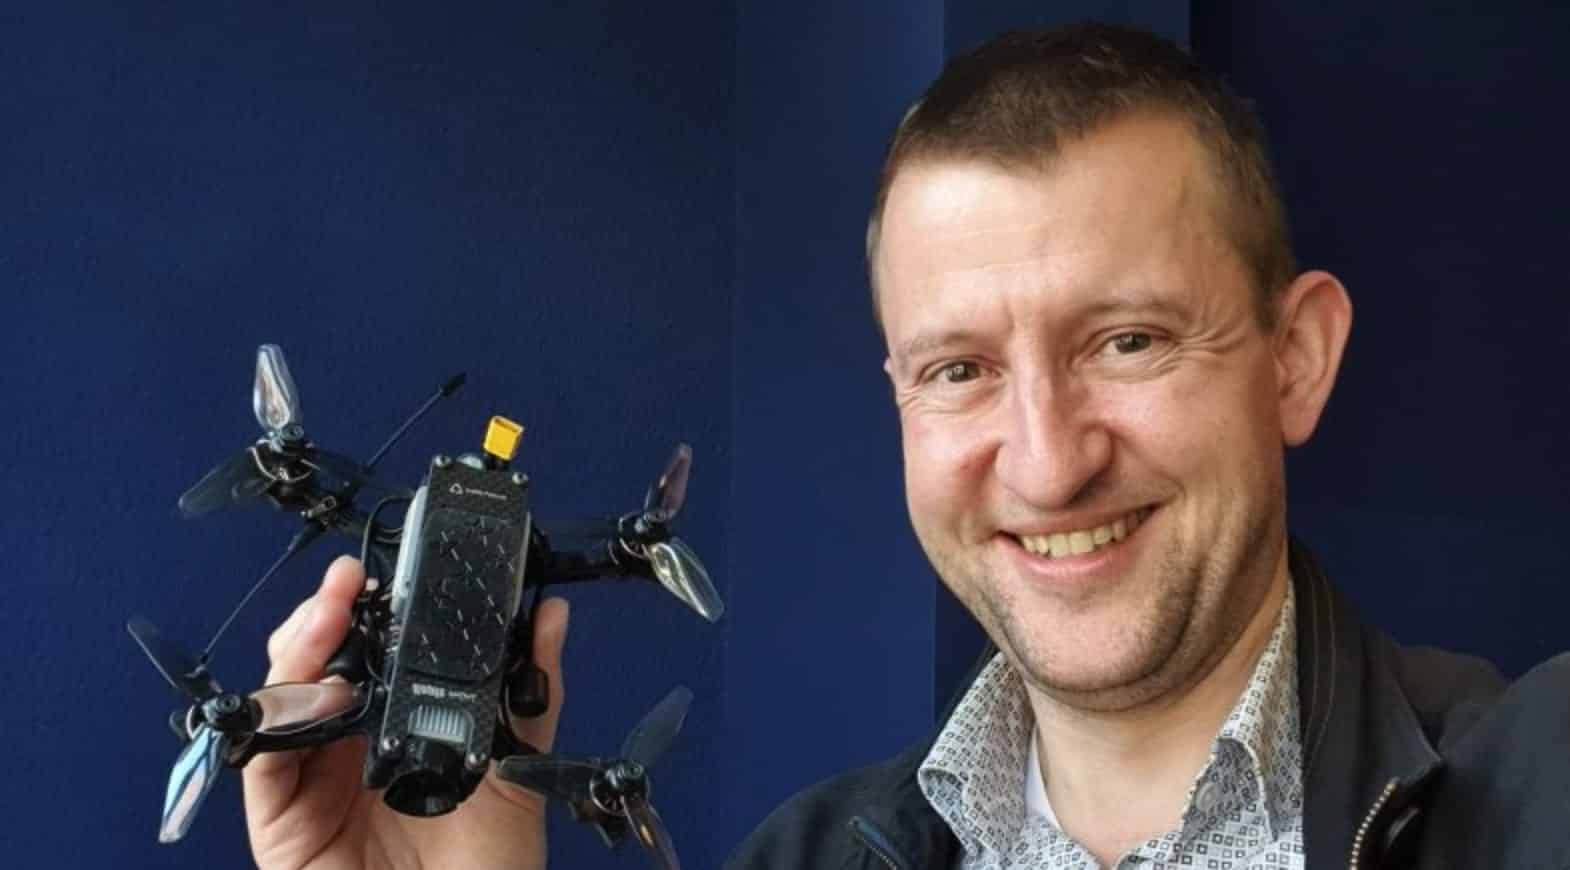 """Dutch researcher wants to give drones """"physical self-awareness"""""""